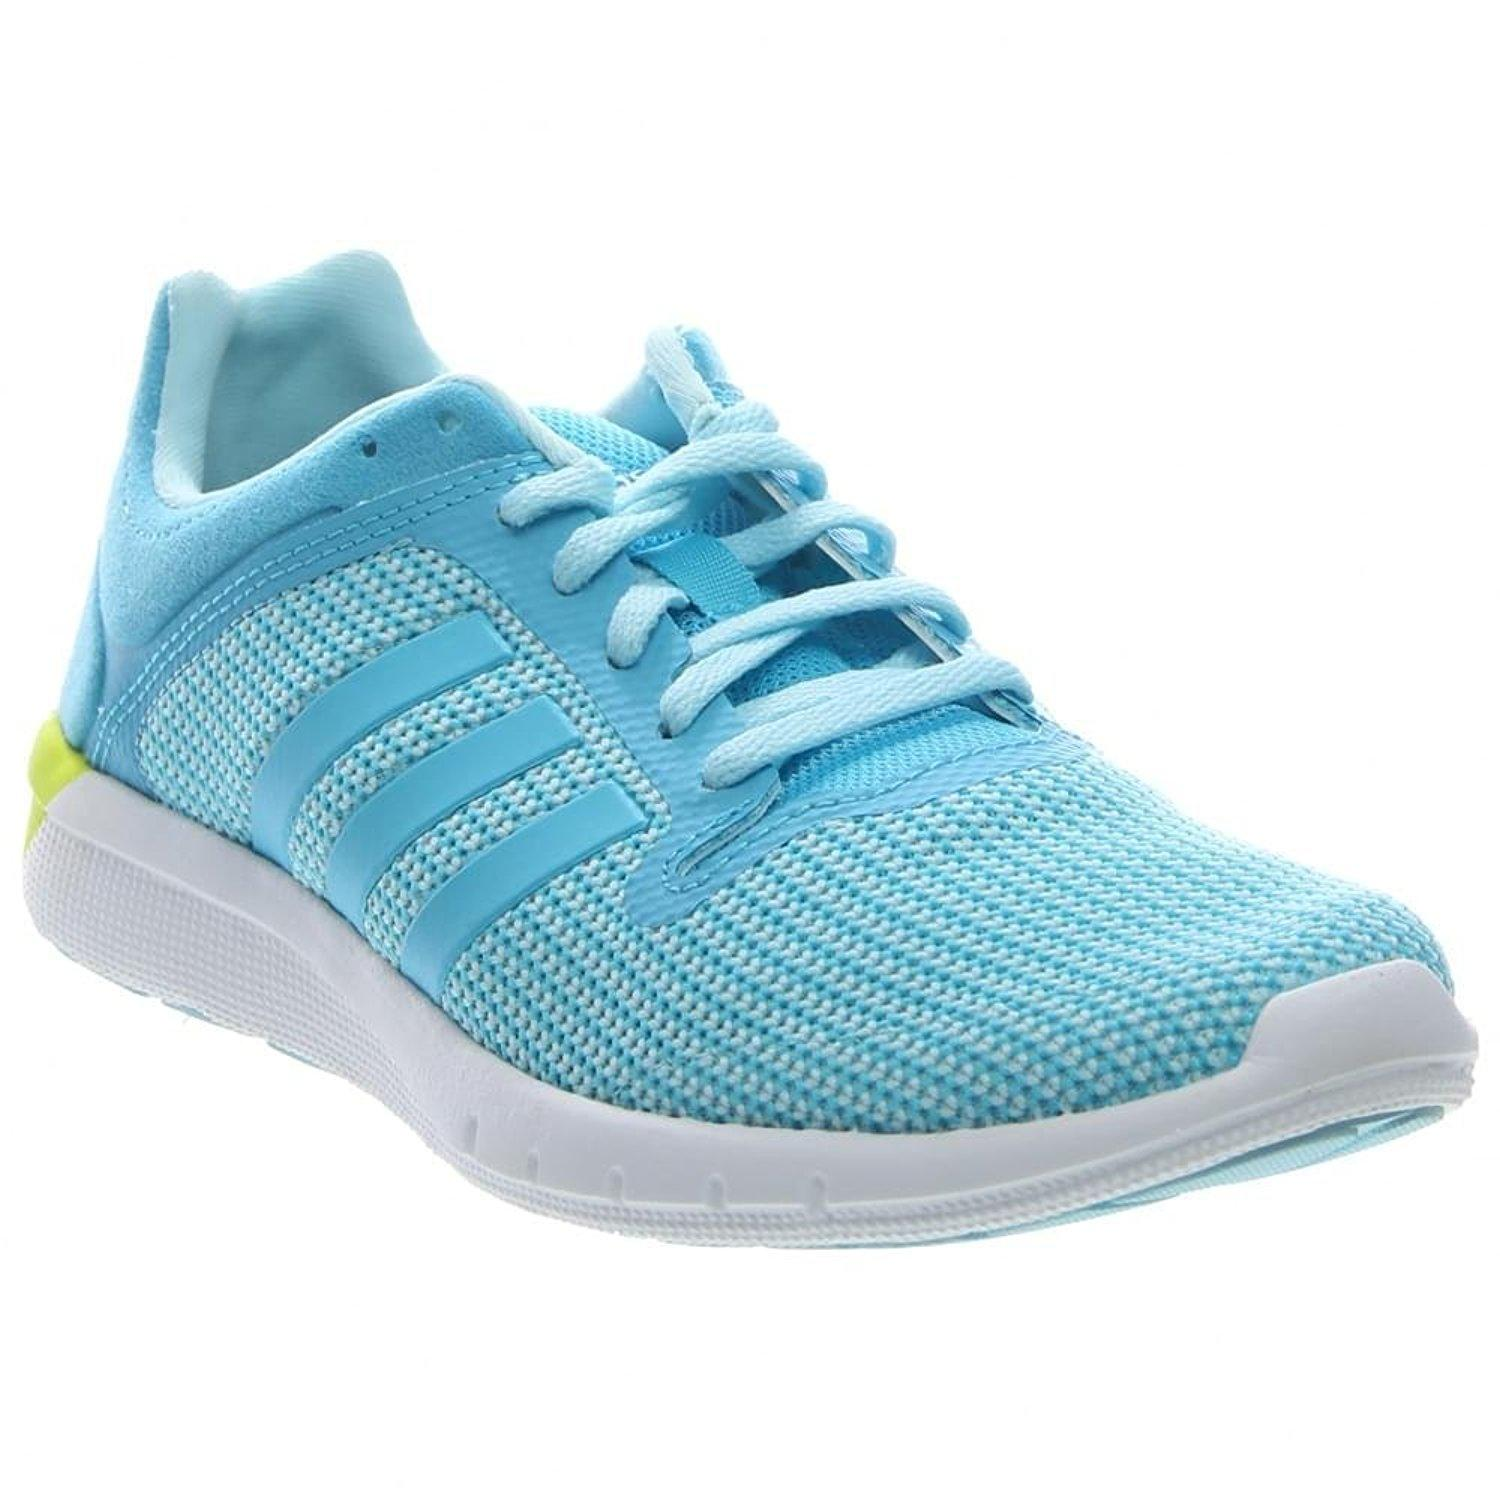 Adidas Climacool Fresh  Mens Running Shoes Review